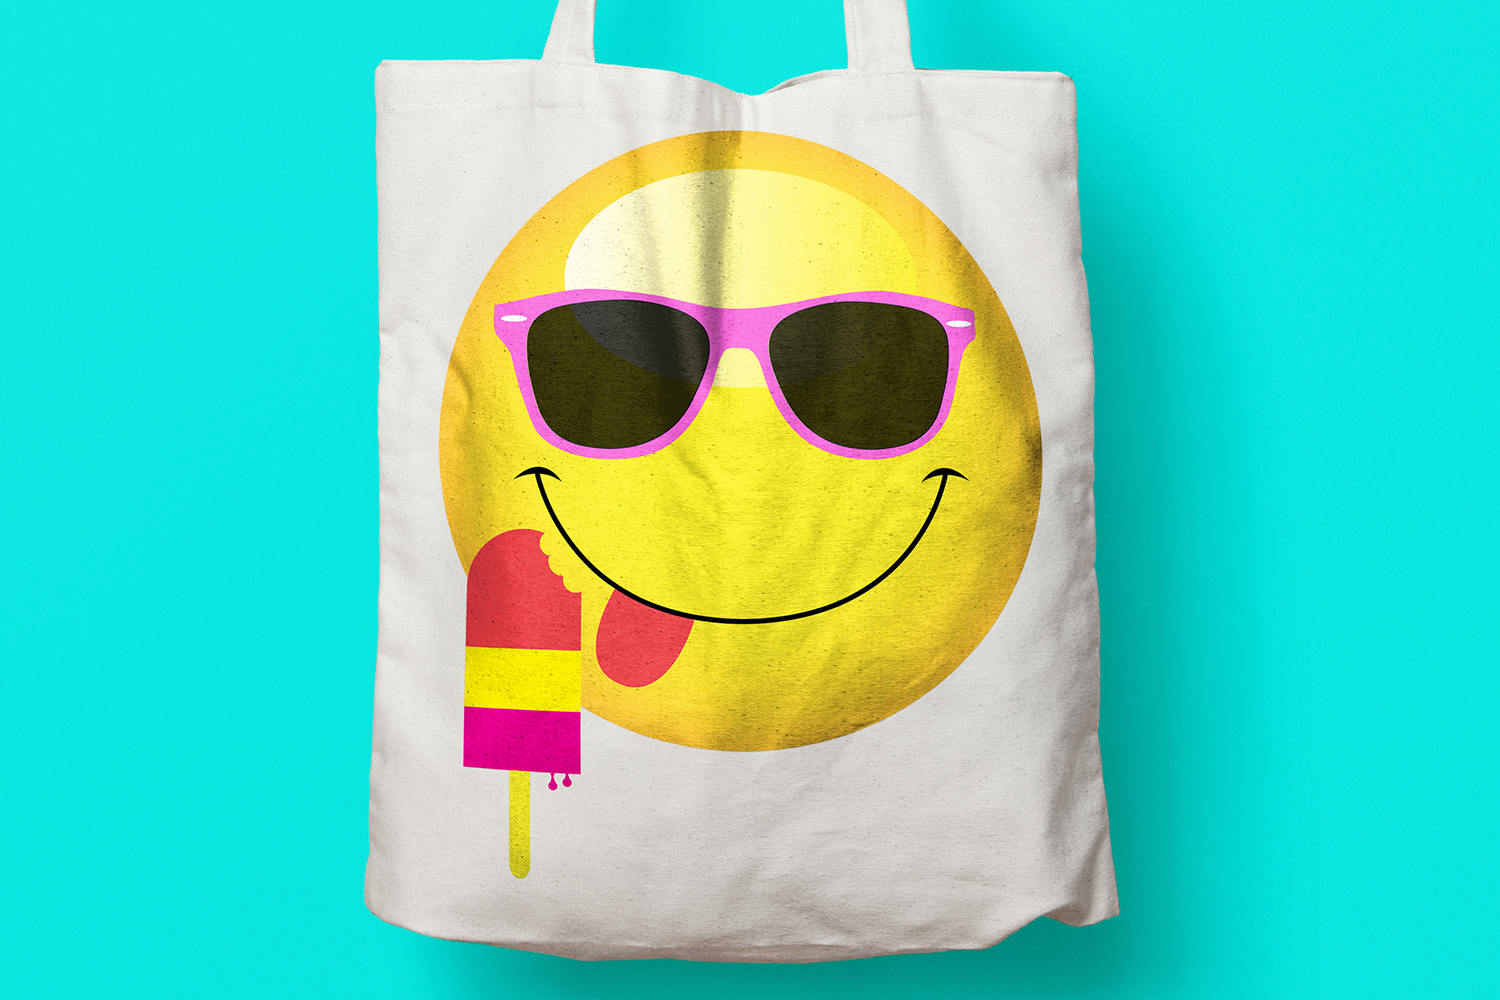 Summer Smiley Emoji Faces Graphic Clipart Bundle example image 4